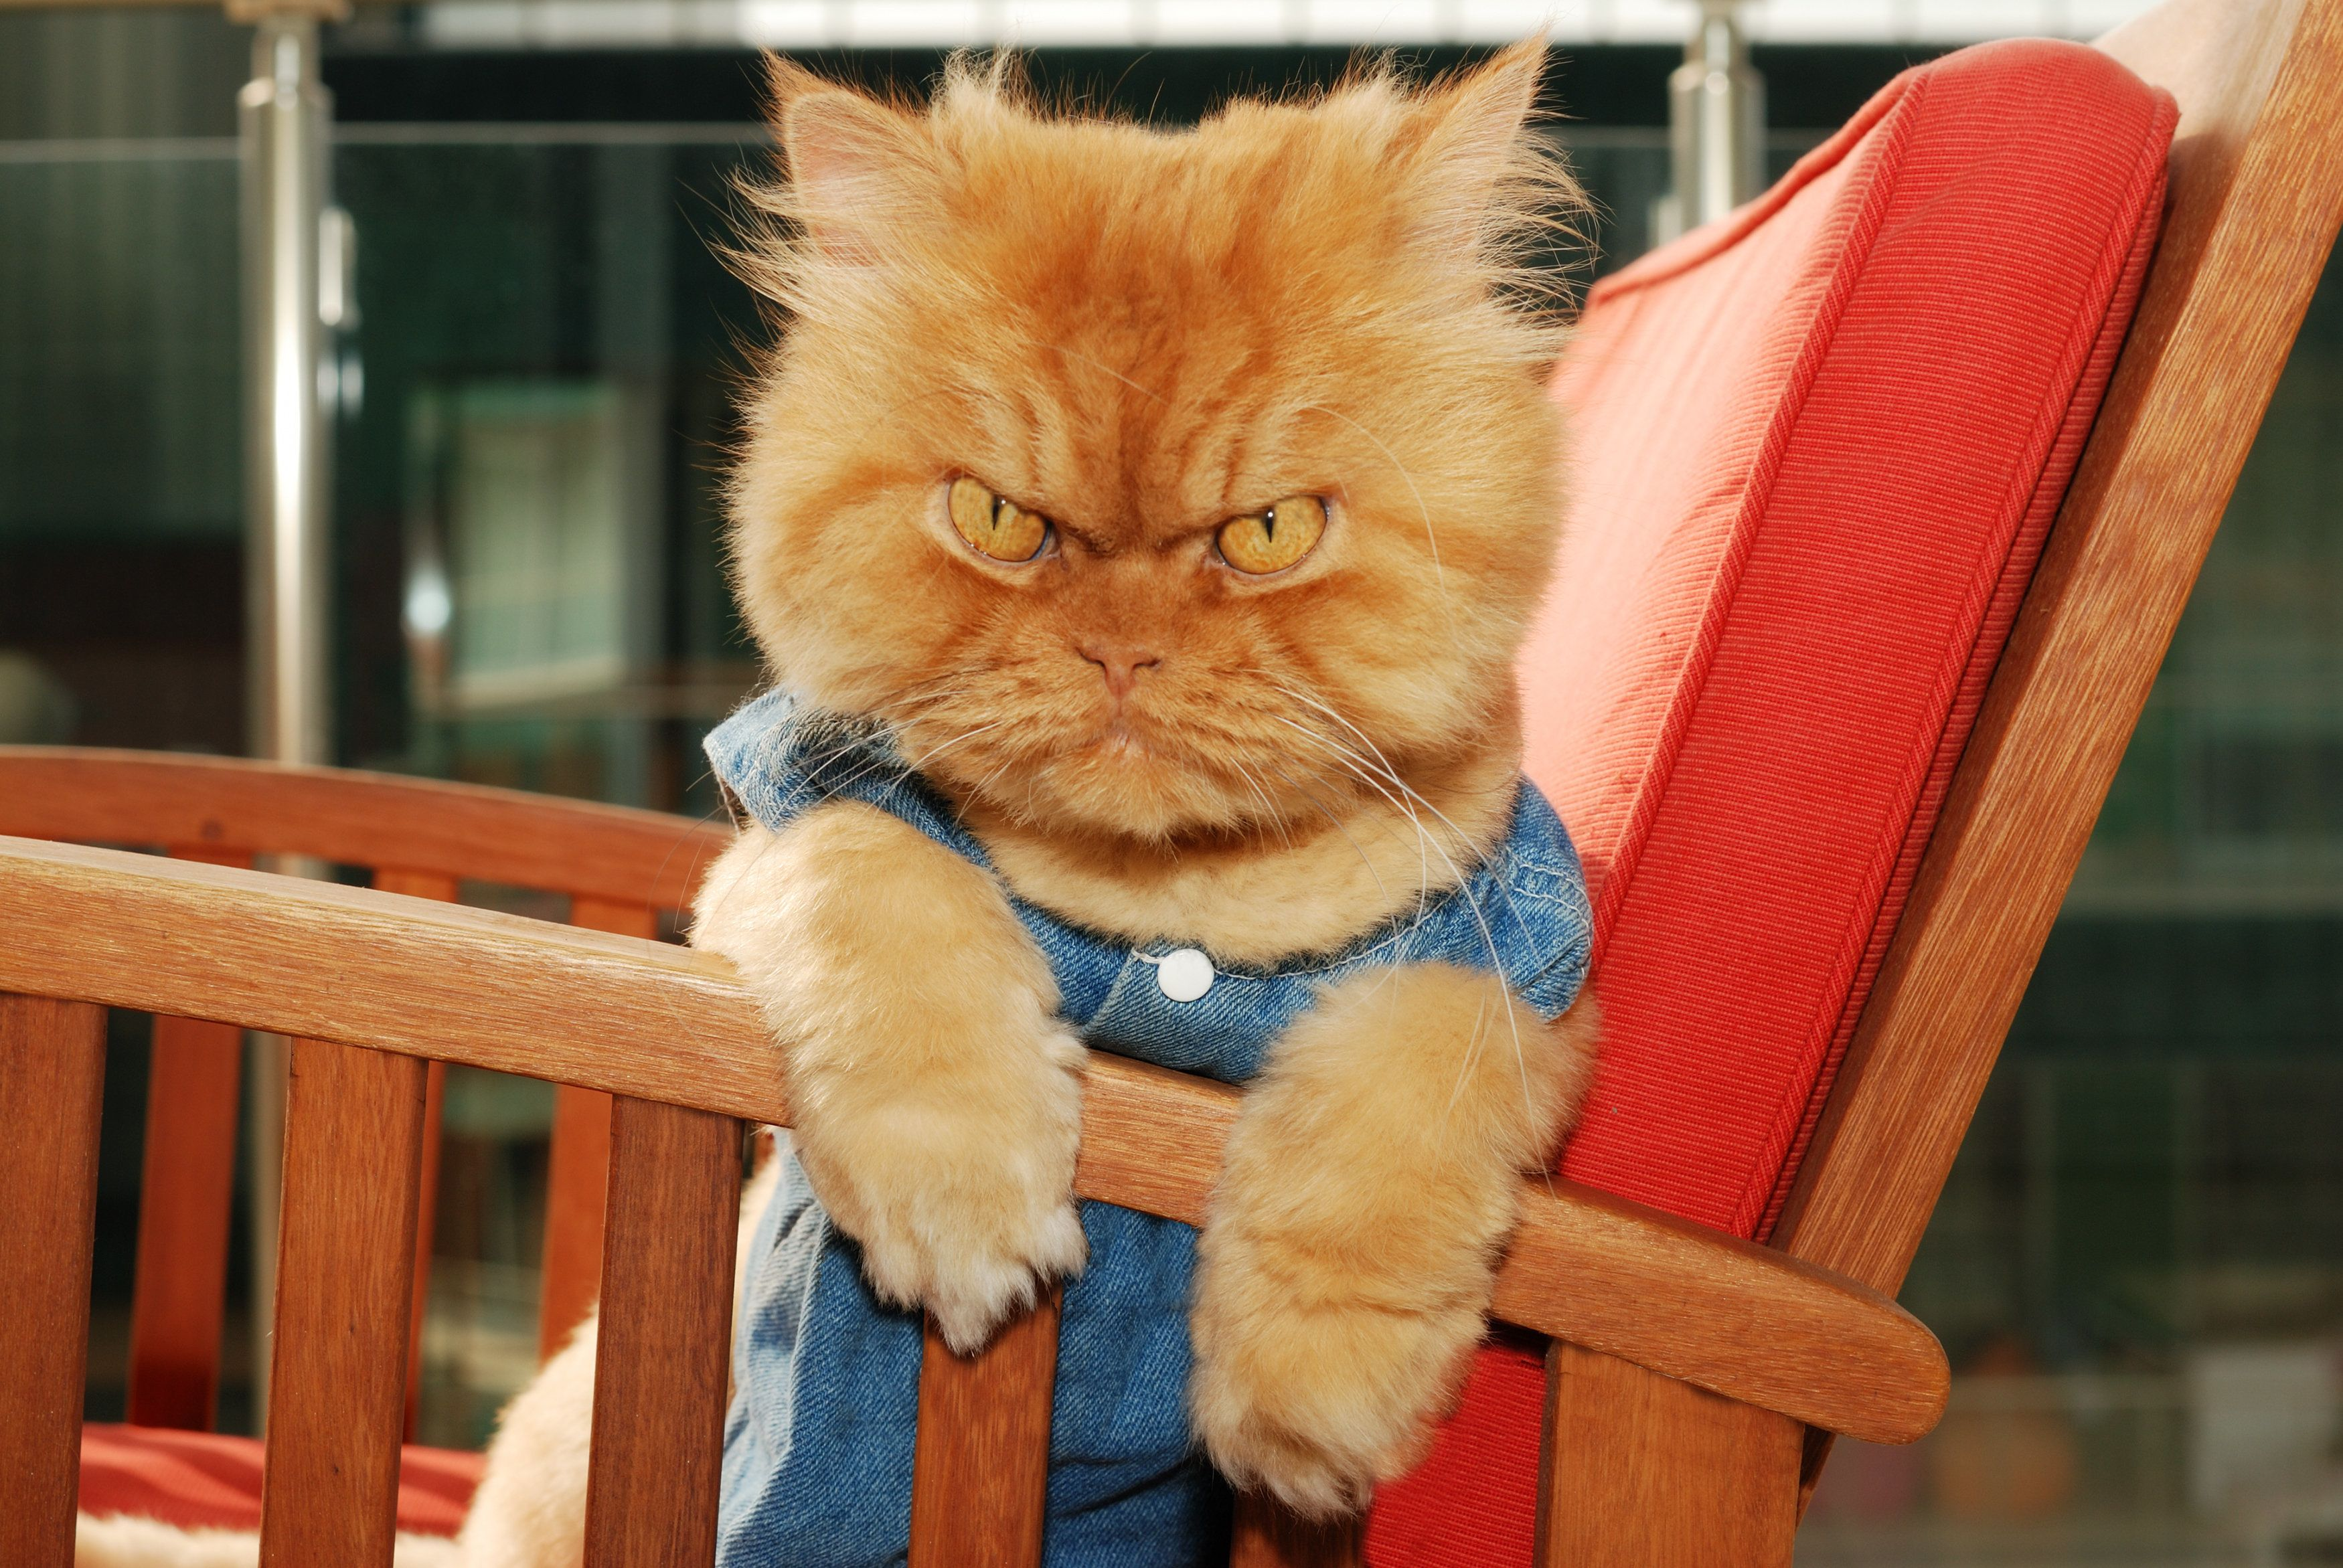 A grumpy Persian domestic cat. A new study suggests that domestic cats don't rely on their owners for safety and security.